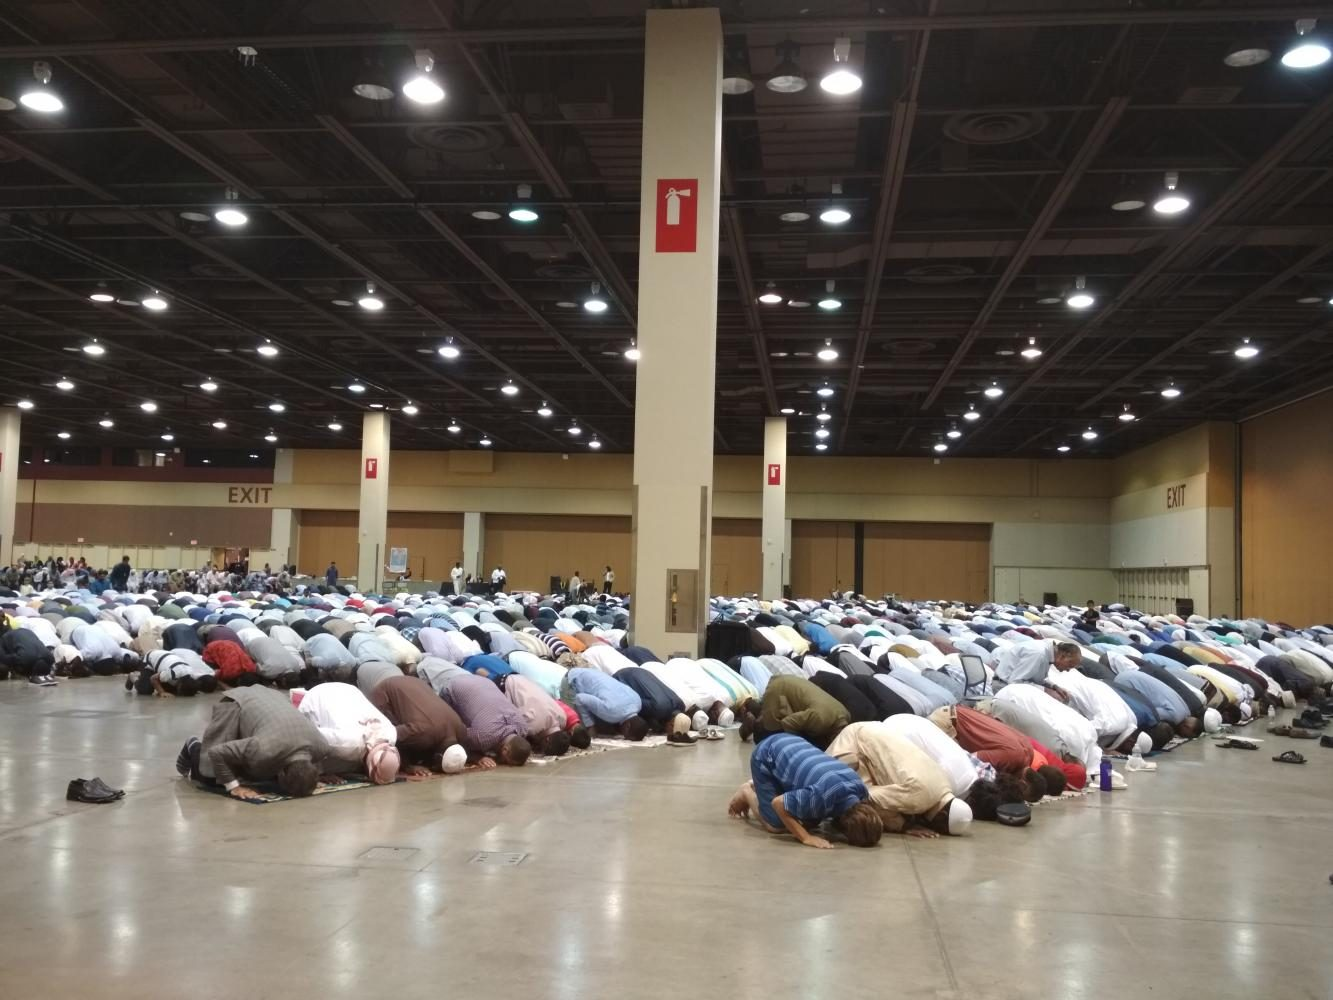 The+Eid+prayer+of+Muslims+at+the+Phoenix+Convention+Center